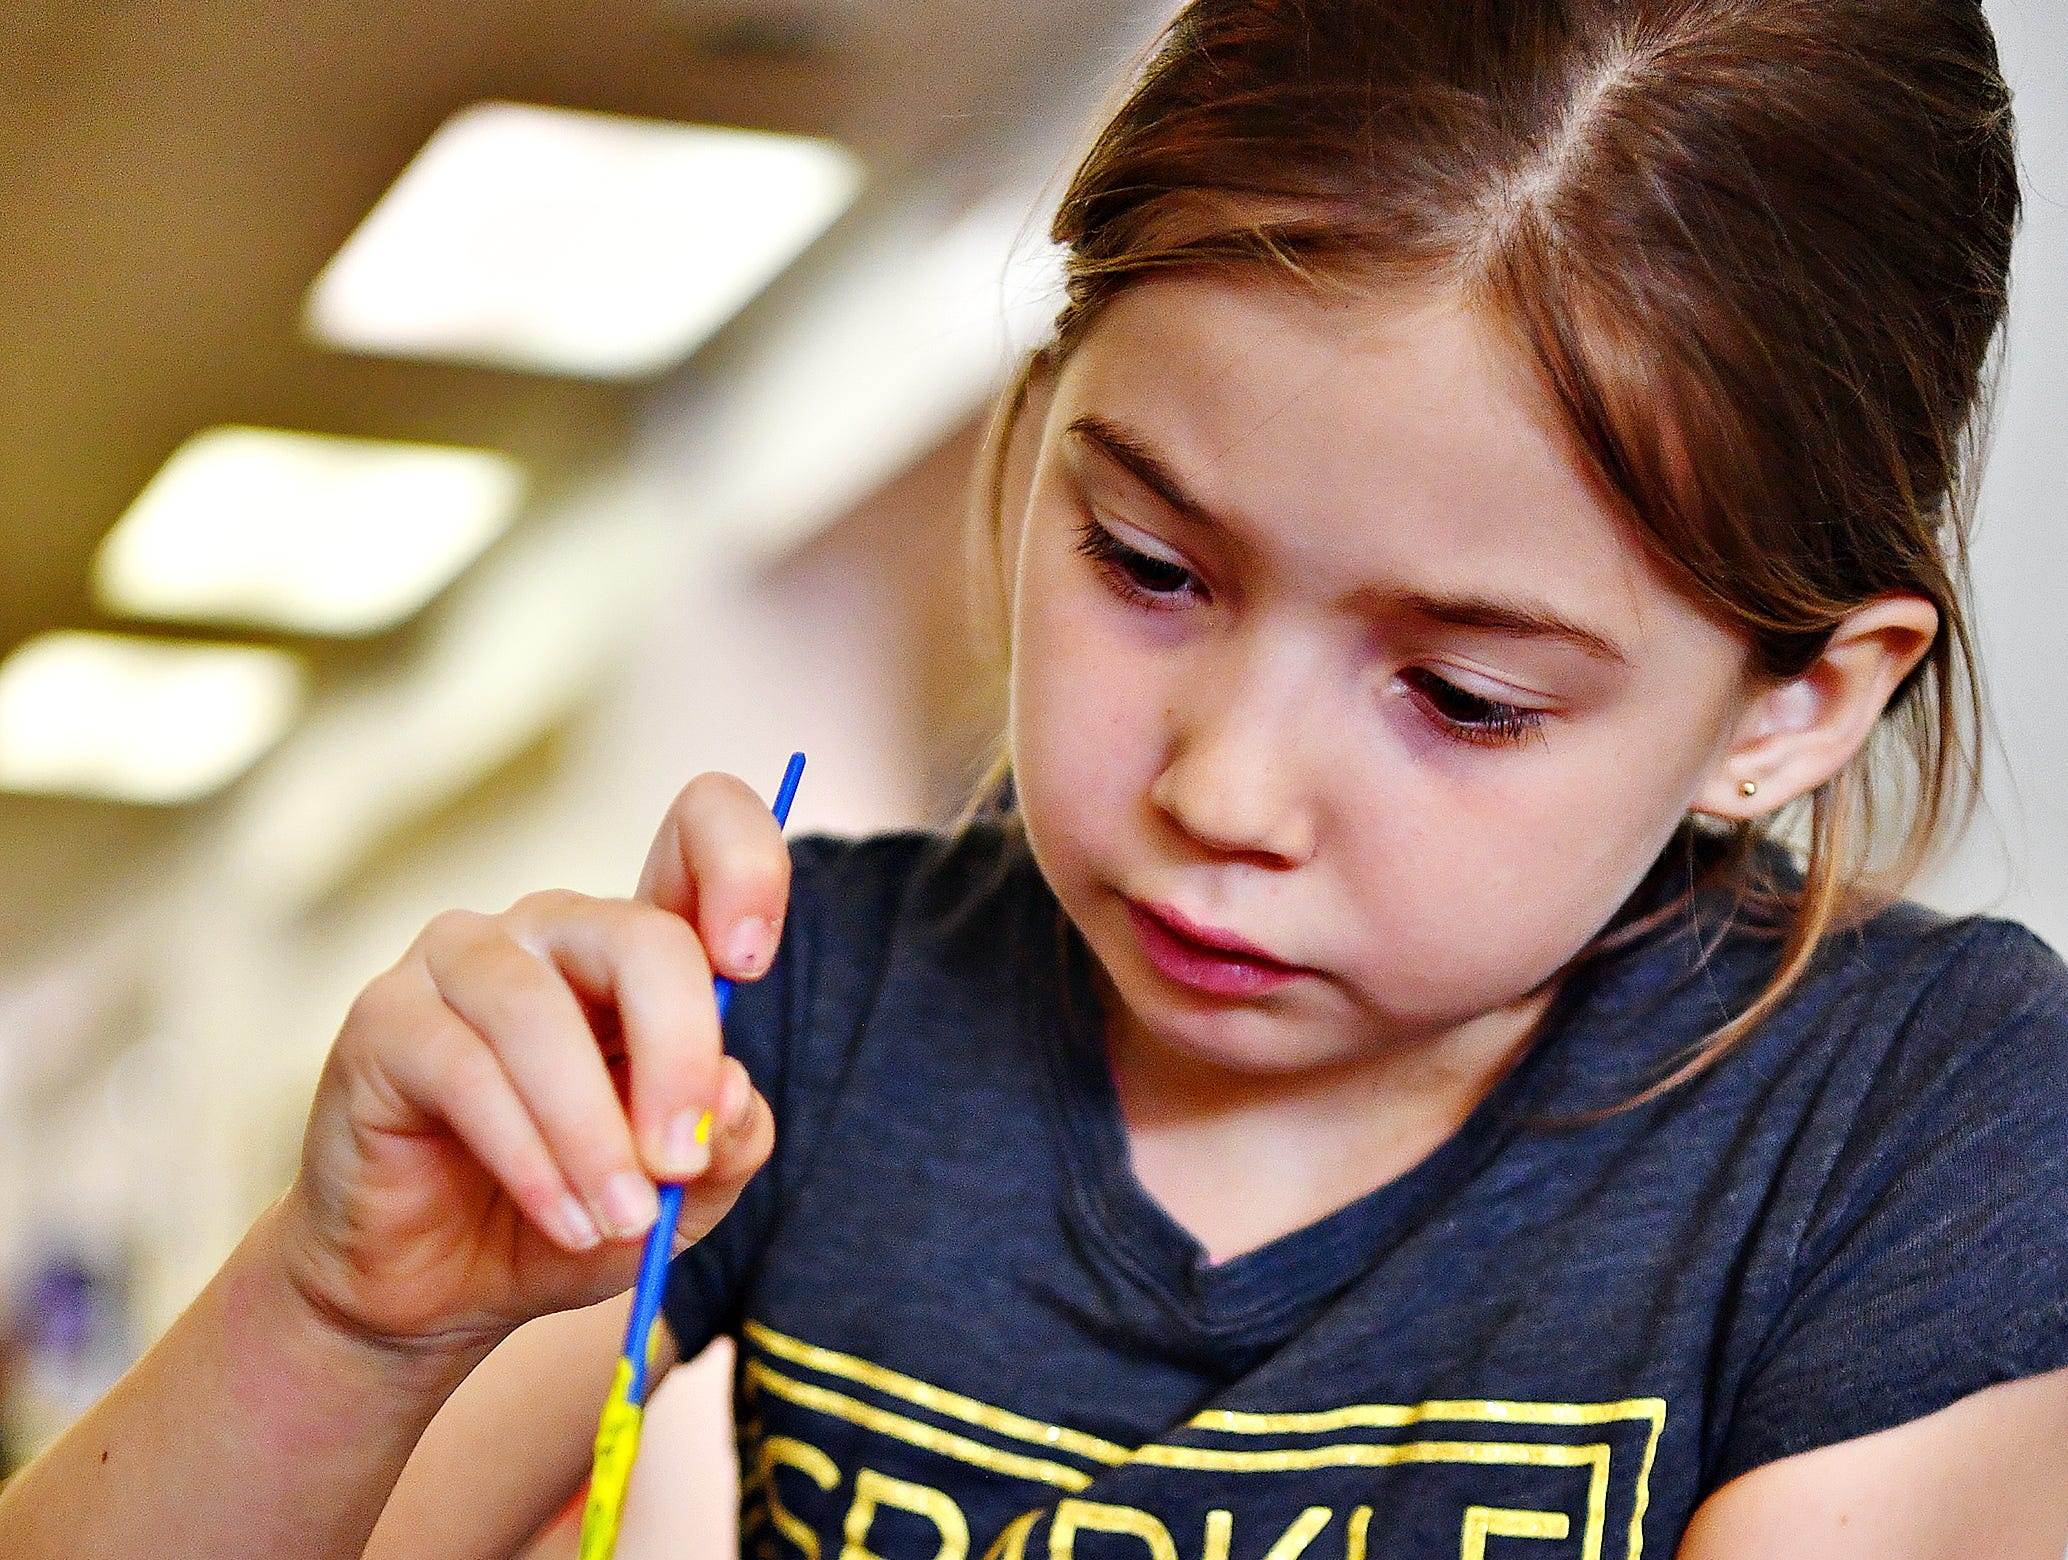 Marcey Neiderer, 8, of Jackson Township, paints a daffodil at a craft table during Glatfelter Memorial Library's Annual Read-a-thon event in Spring Grove, Saturday, April 6, 2019. Dawn J. Sagert photo